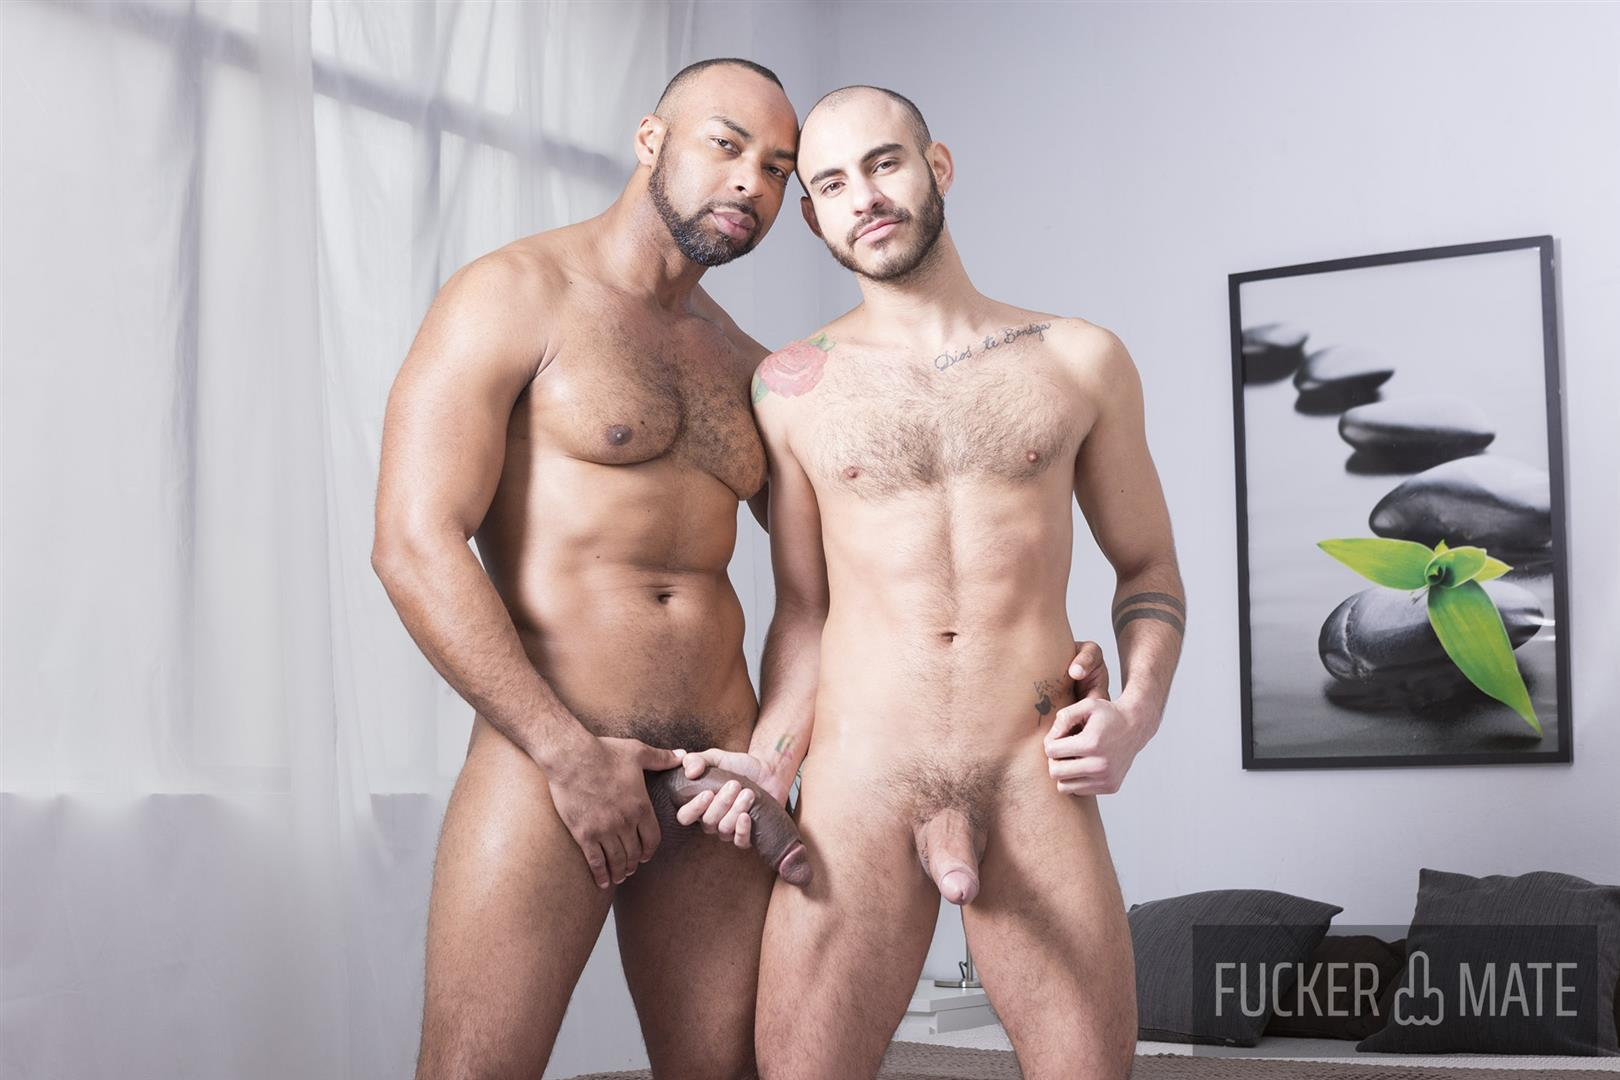 Fuckermate-Ray-Diesel-and-Patrick-Dei-Big-Black-Cock-Barebacking-Latin-Ass-02 Big Dick Black Daddy Ray Diesel Breeding Patrick Dei